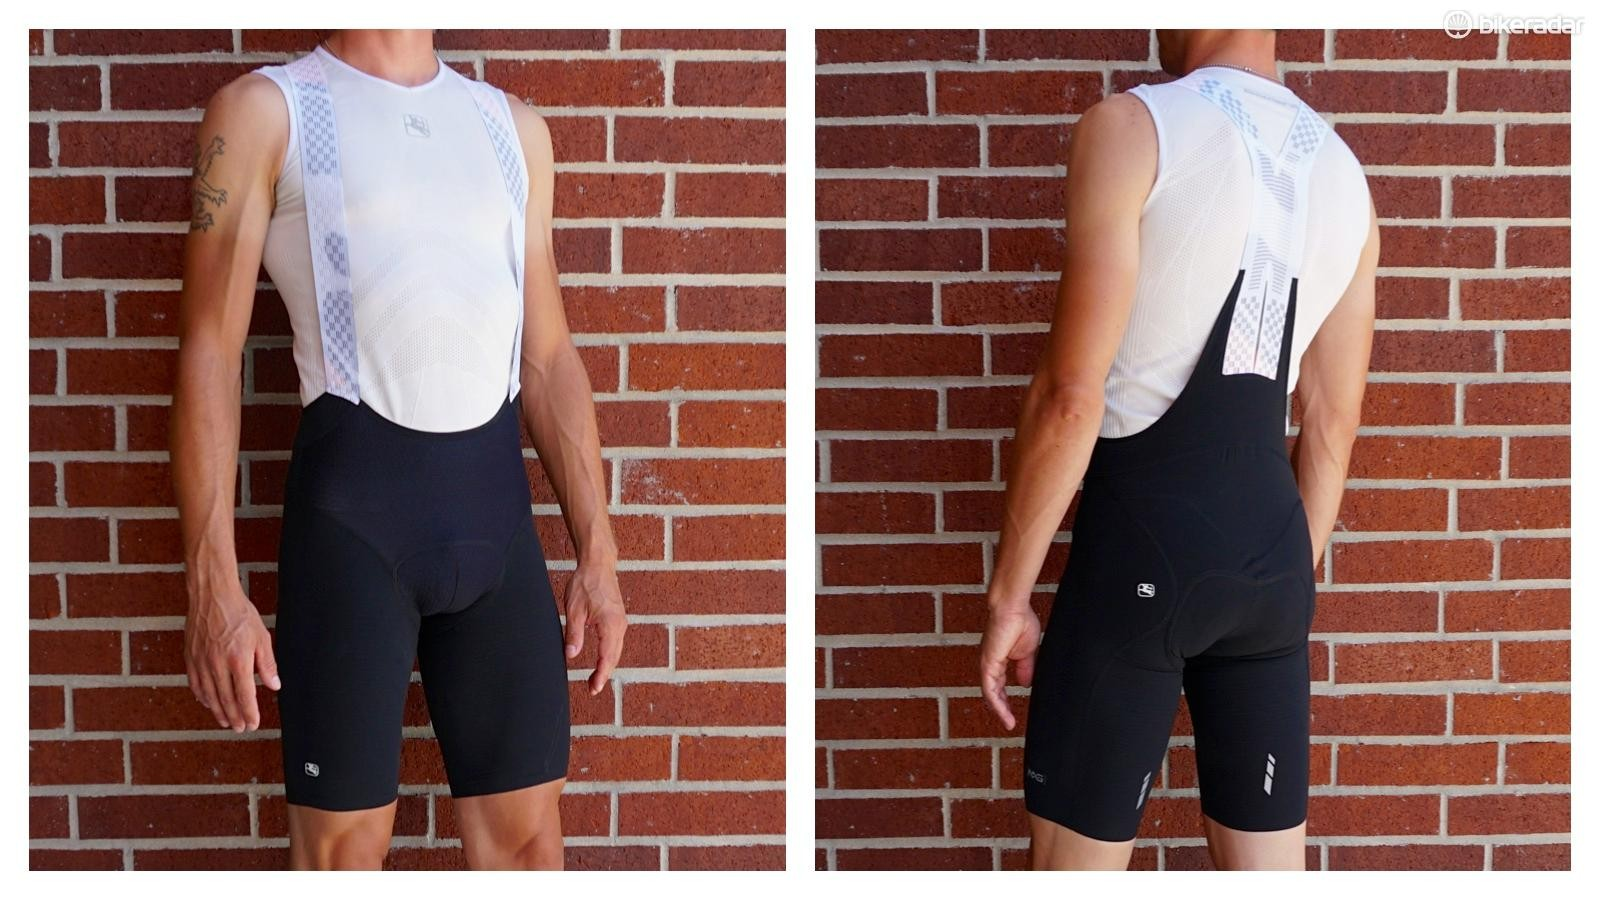 Giordana NX-G bibs are industry-leading in every way